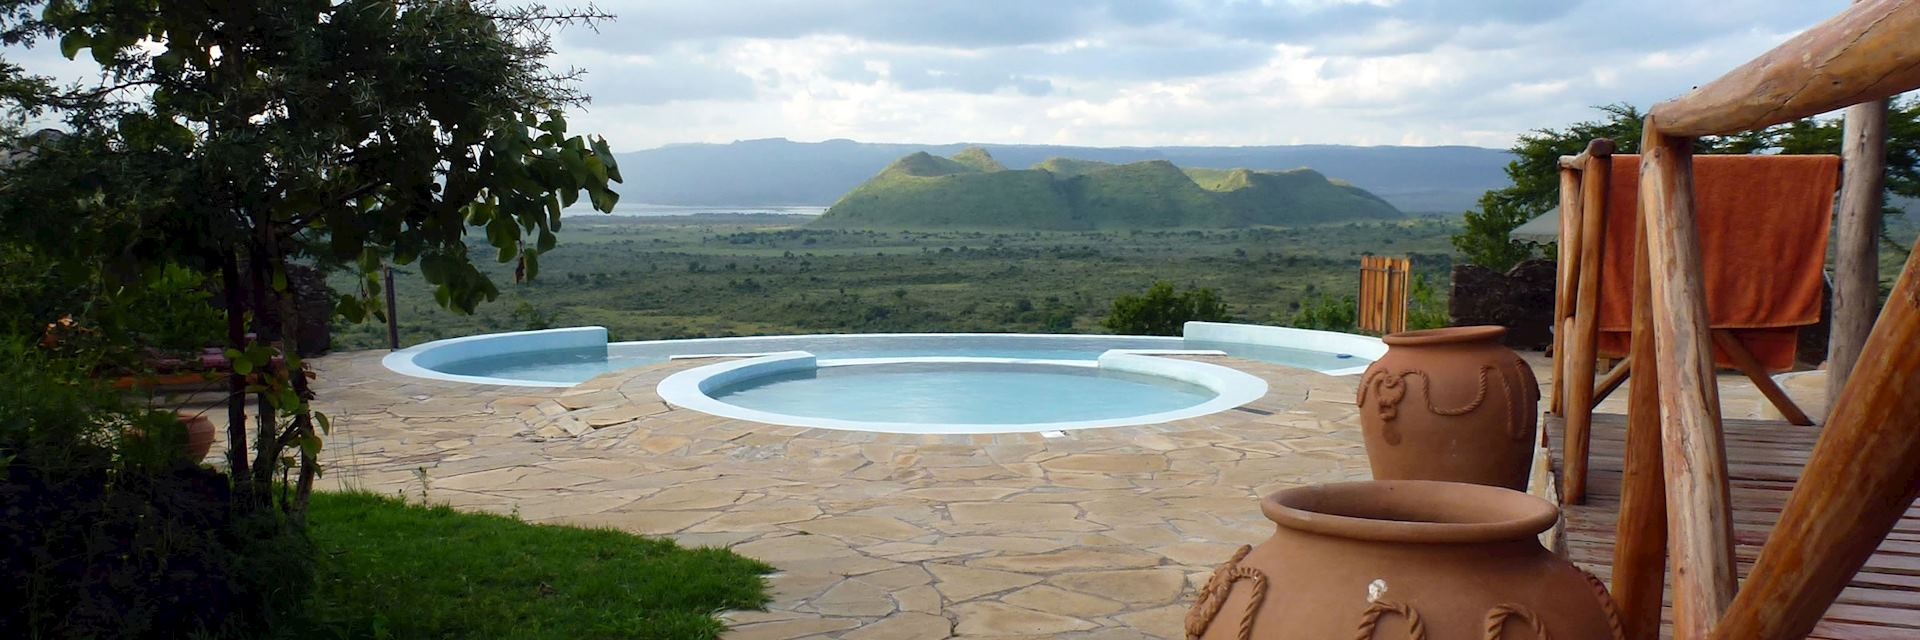 Sleeping Warrior Lodge, Lake Elementaita